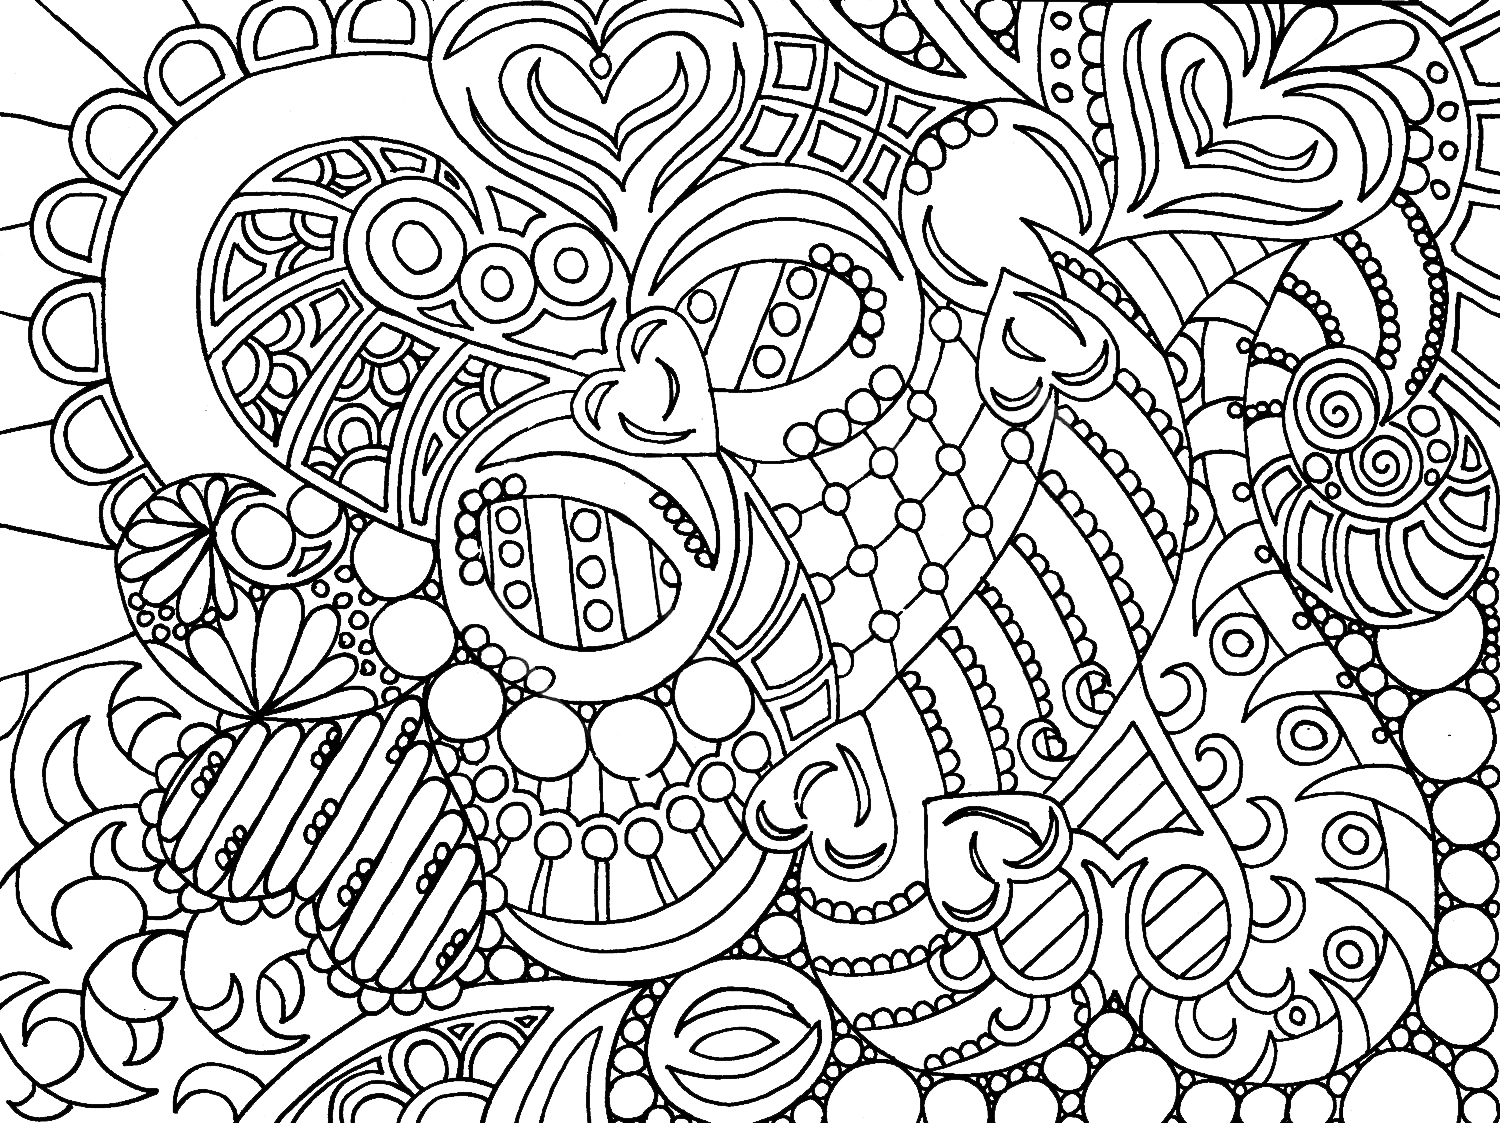 coloring pages for adults hundred coloring books being published 1500x1123